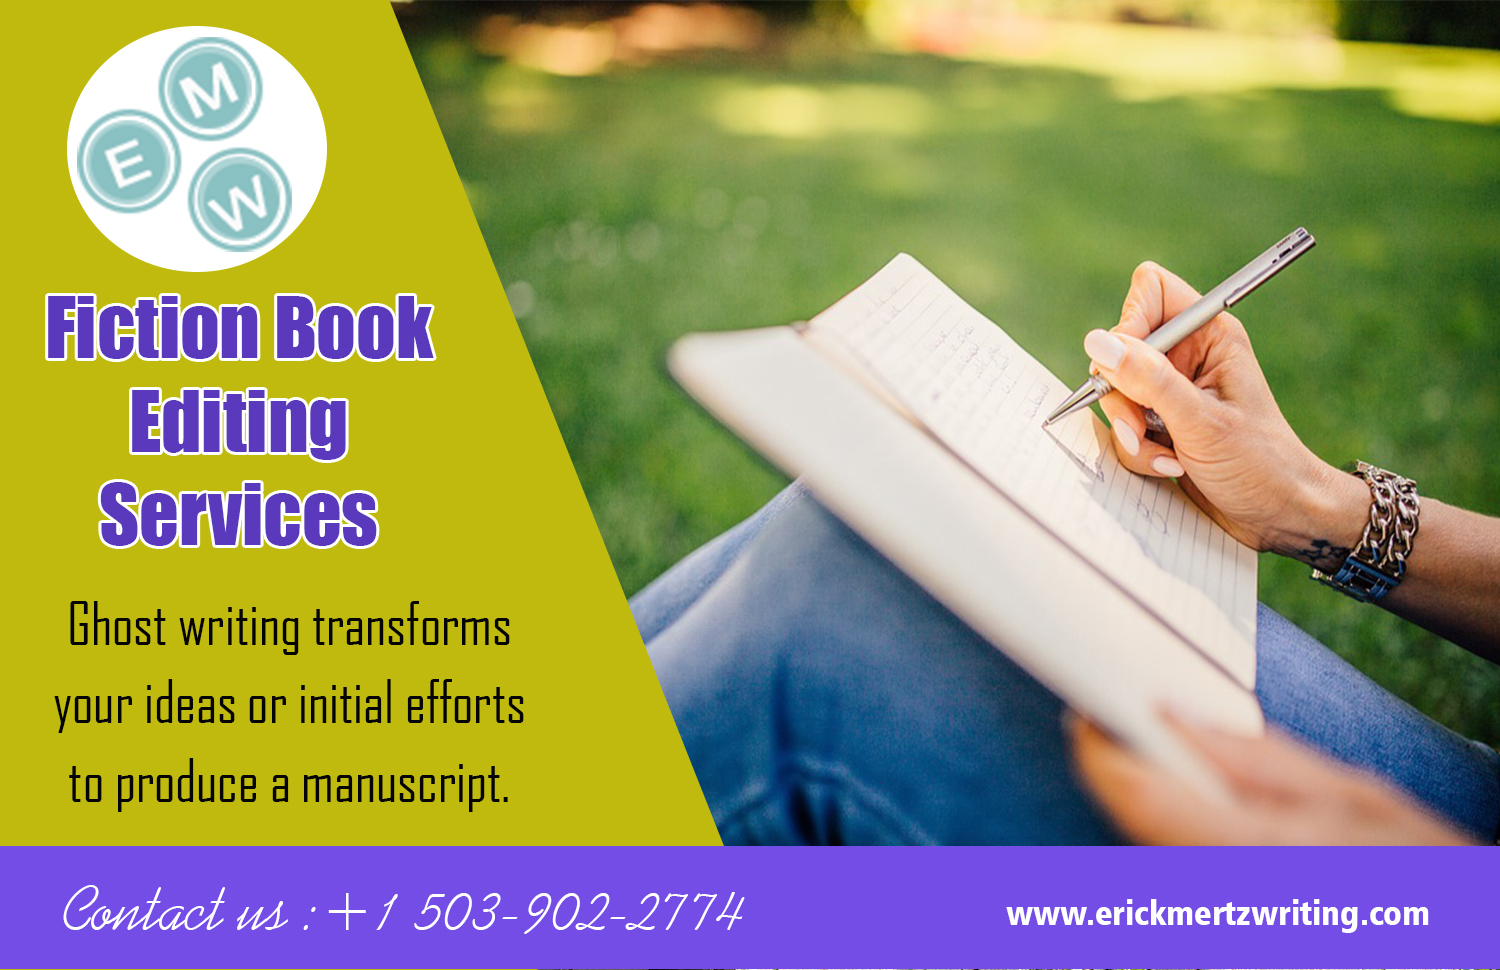 Fiction Book Editing Services